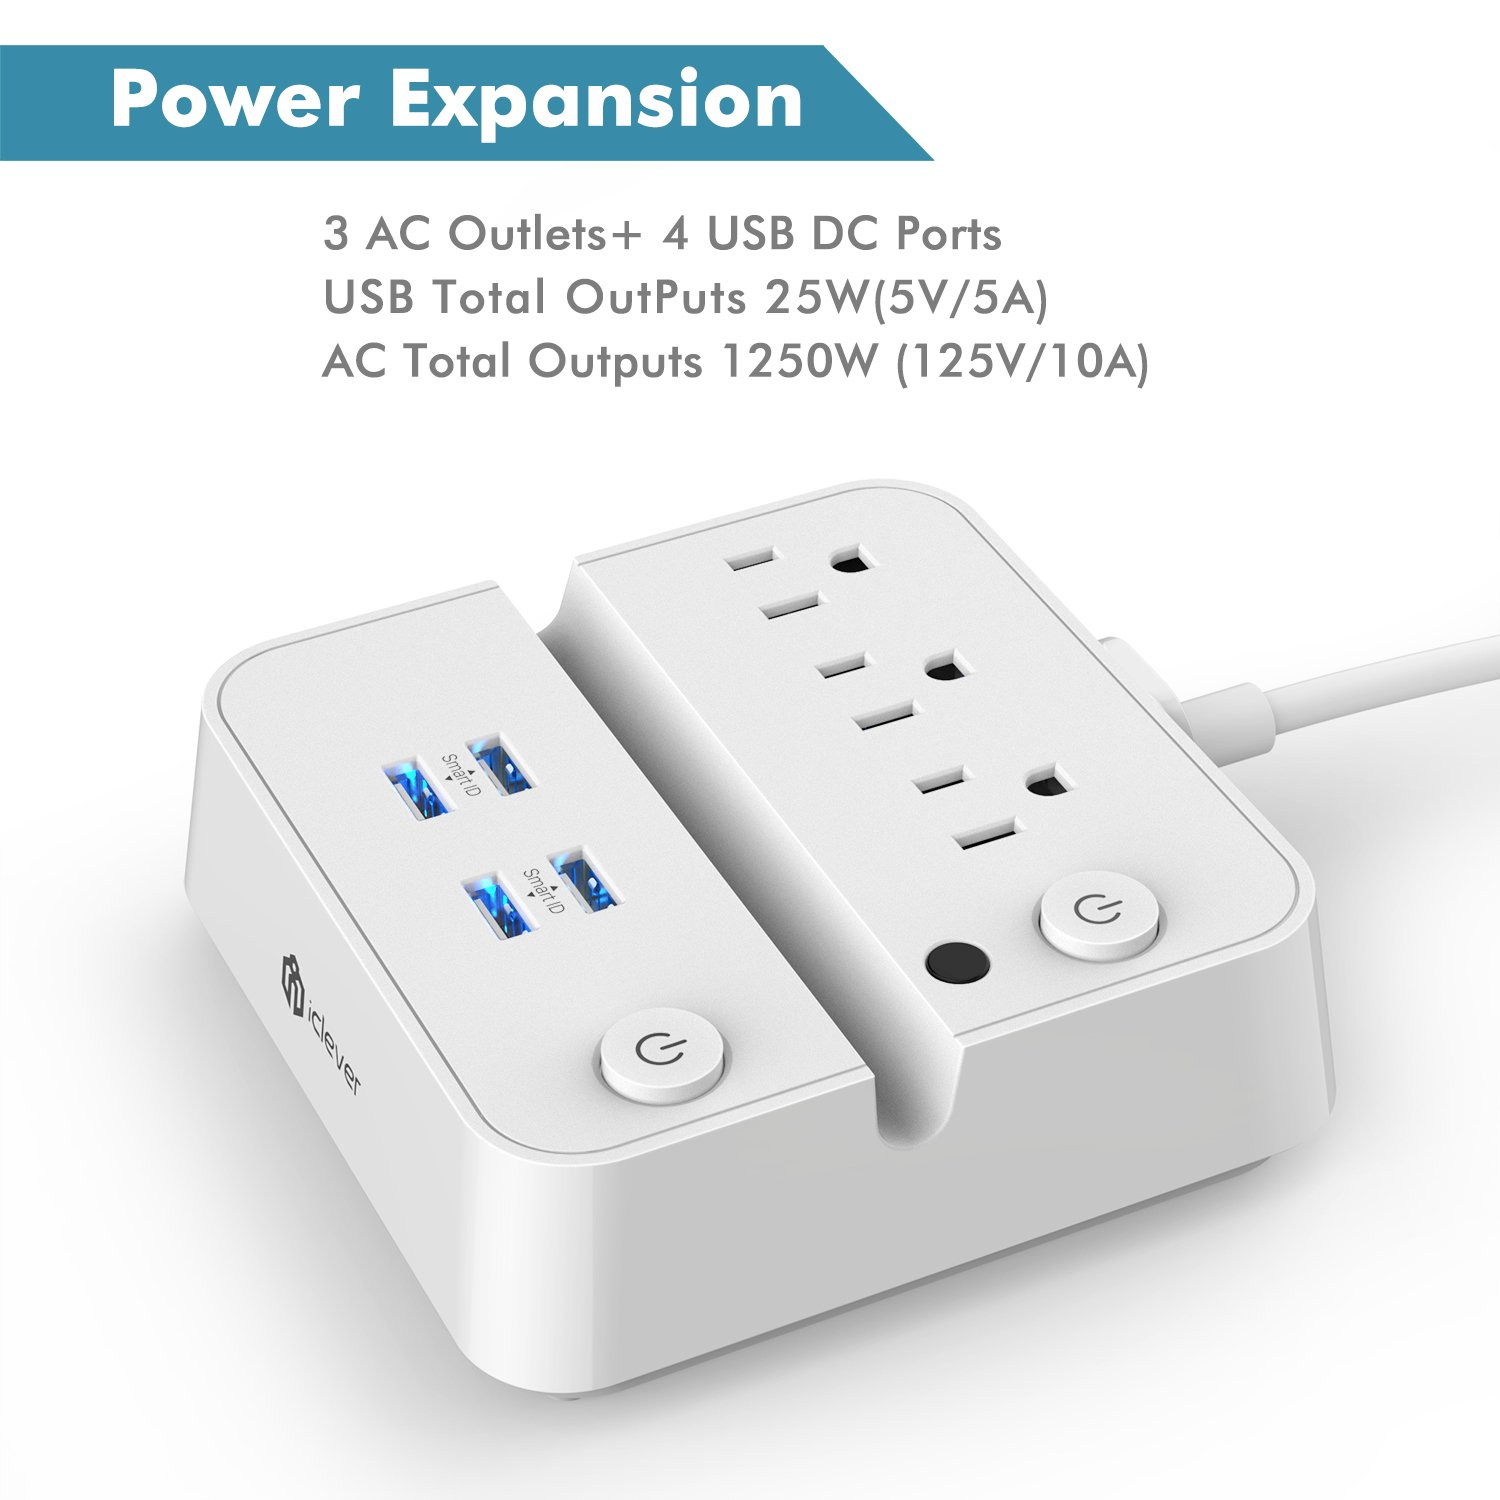 [Separate Switch Control] iClever BoostStrip IC-BS02 Smart Power Strip | USB Charger with 4 USB + 3 AC Outlets, Dual Switch Control Charging Station and Phone/Tablet Stand - White by iClever (Image #2)